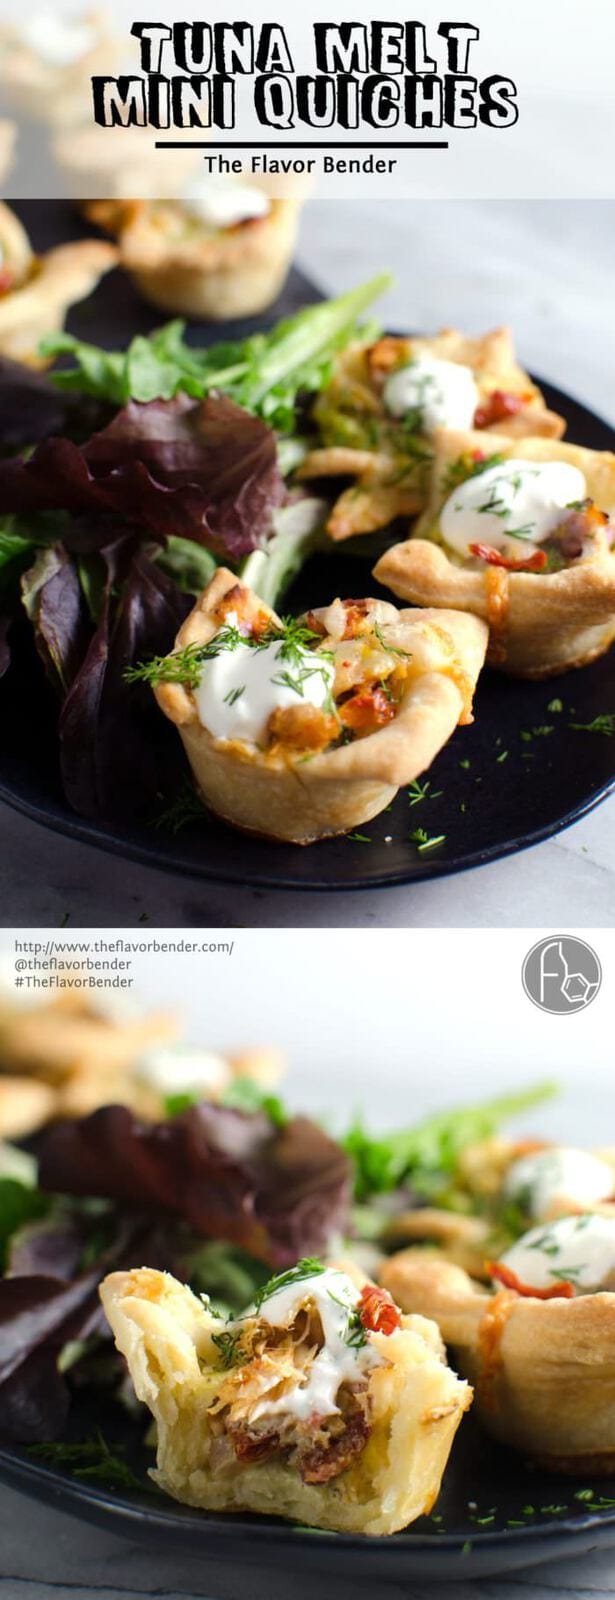 Tuna Melt Mini Quiches - Tuna melts made into bite sized party appetizers! By using delicious Sustainable Solid Tuna like #WildSelections you KNOW it's going to taste even better! REPIN to save. CLICK to get the recipe. #TheFlavorBender